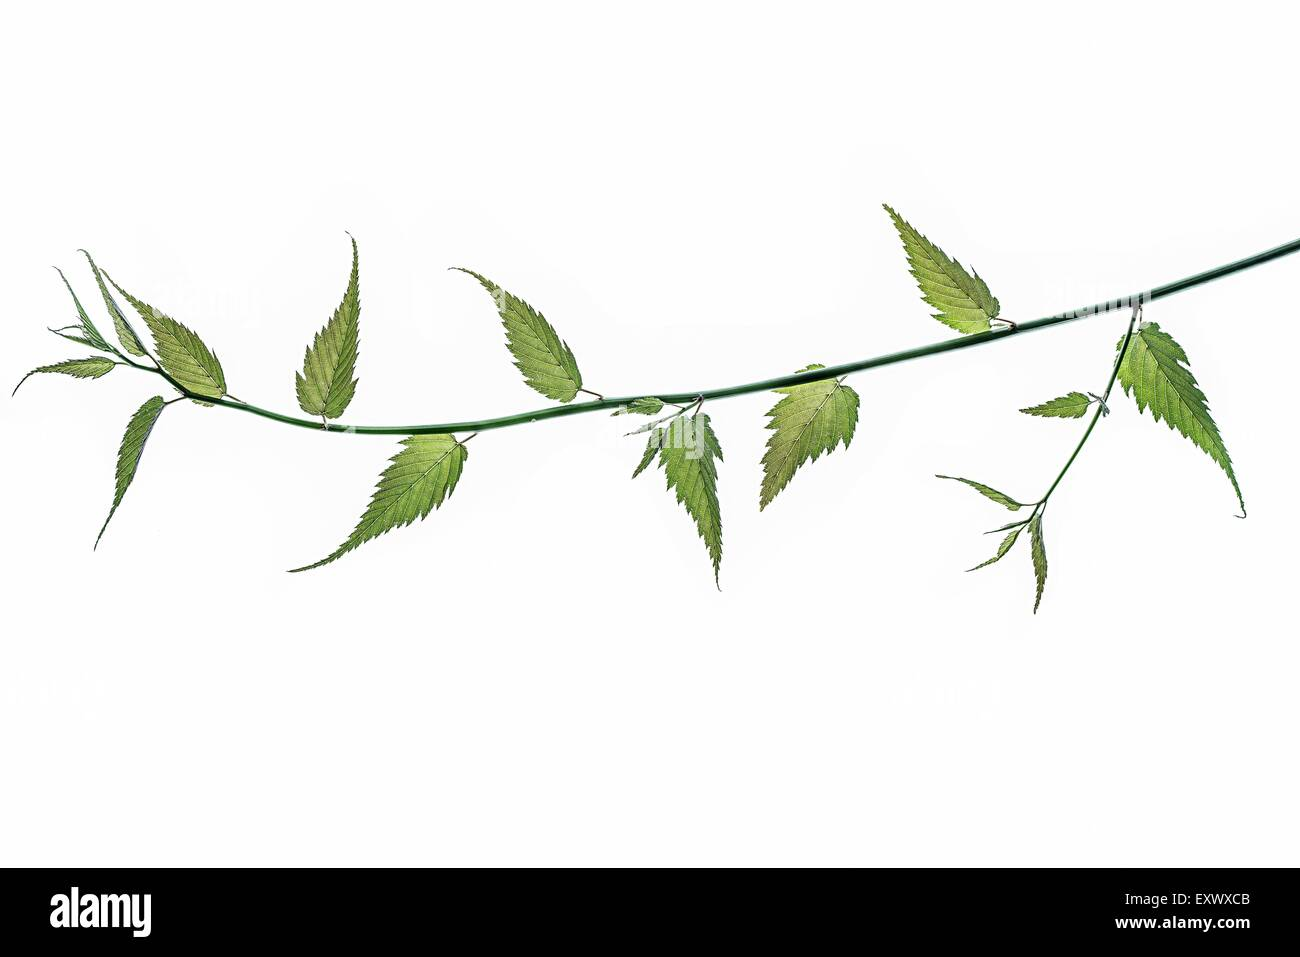 Twig of a ranunculus - Stock Image